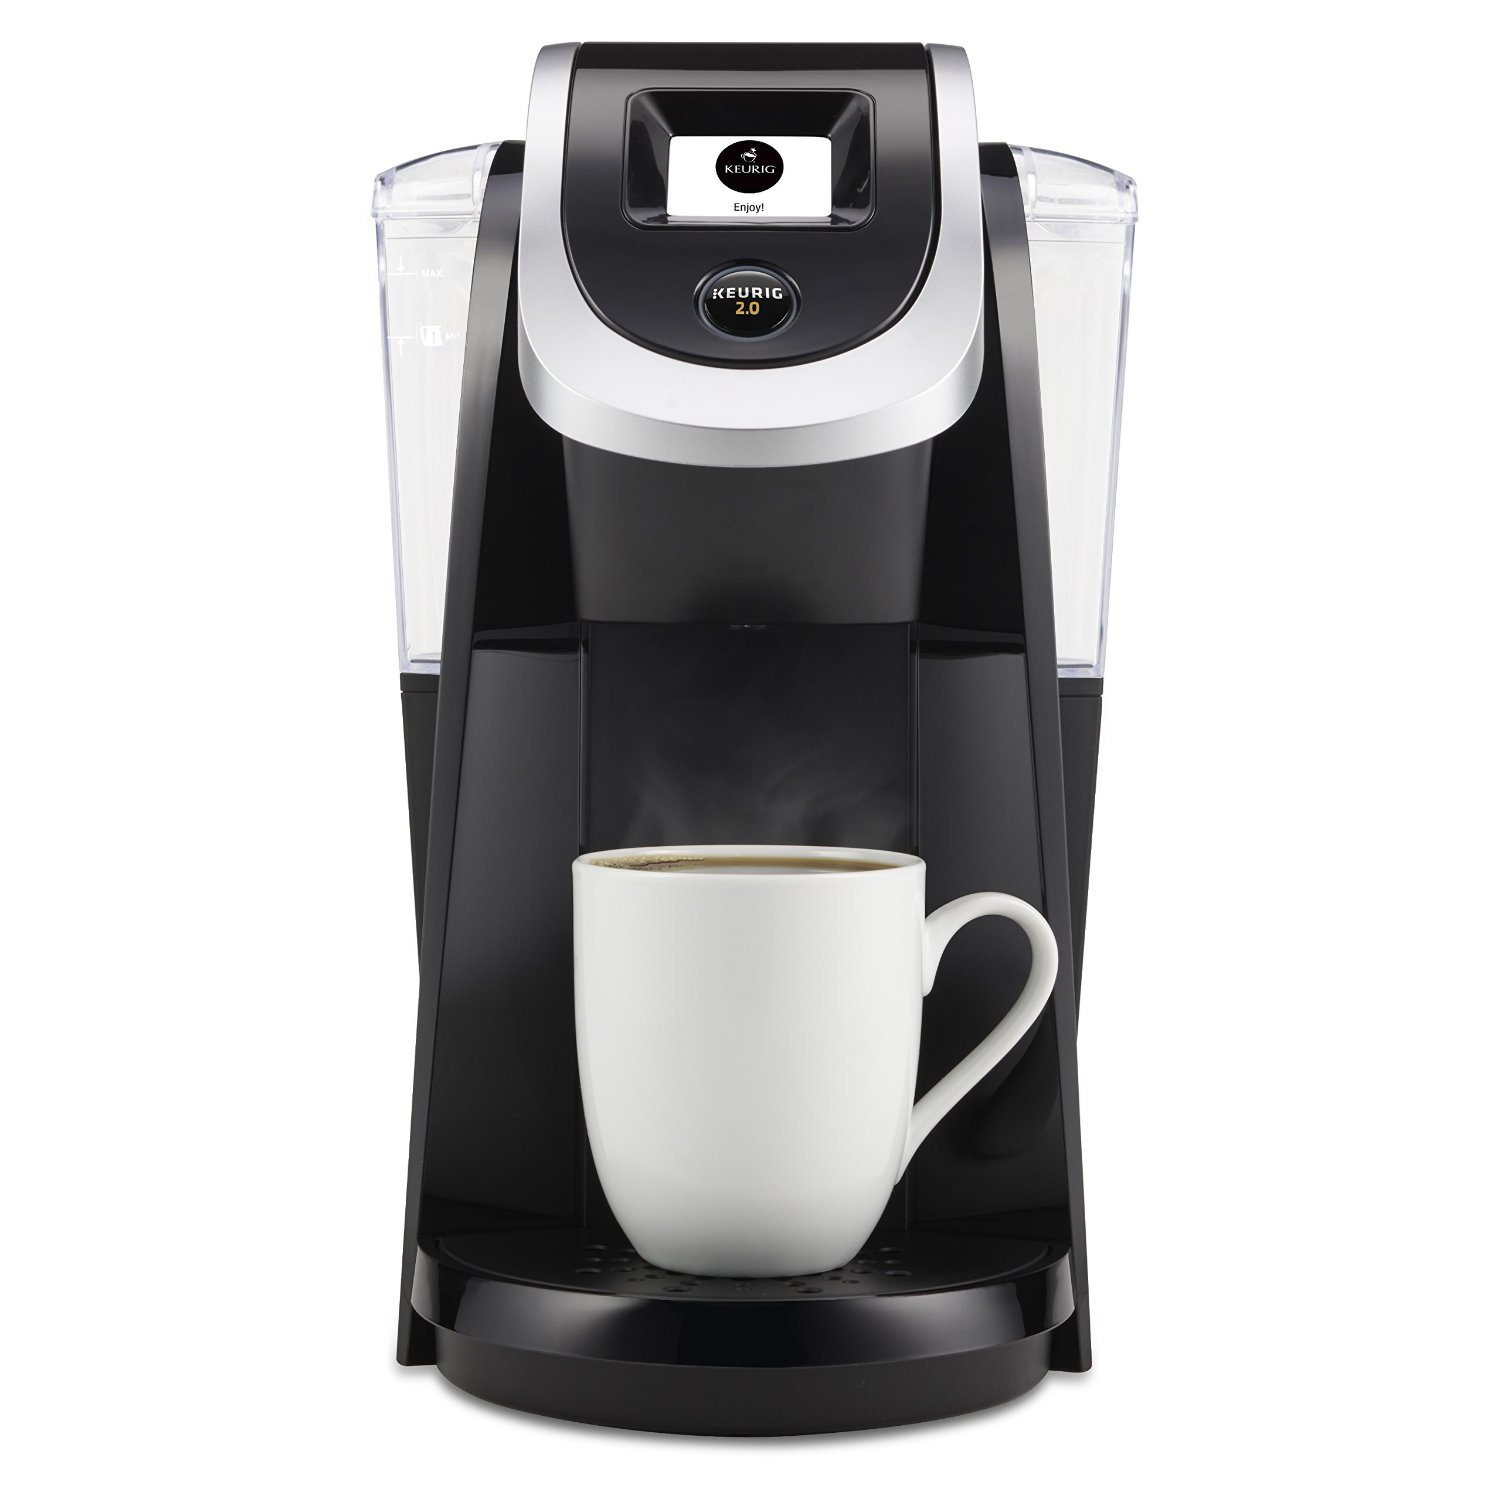 10 Best Keurig Coffee Maker Reviews — Finest Models of 2020 Only